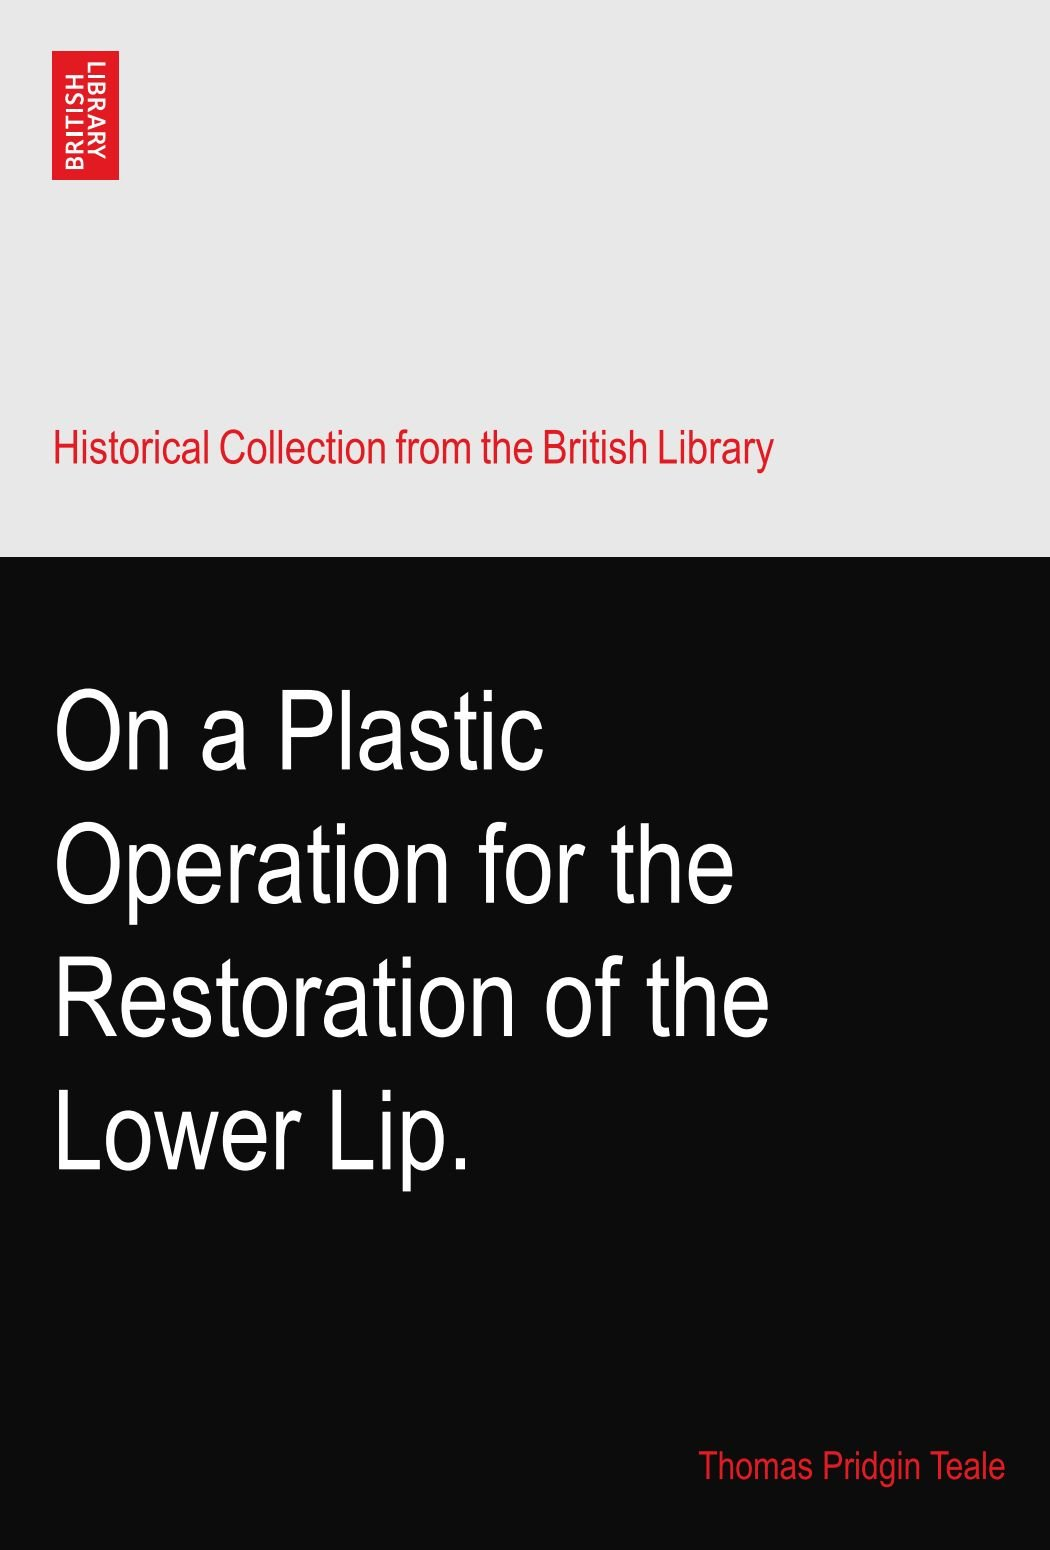 Download On a Plastic Operation for the Restoration of the Lower Lip. ebook